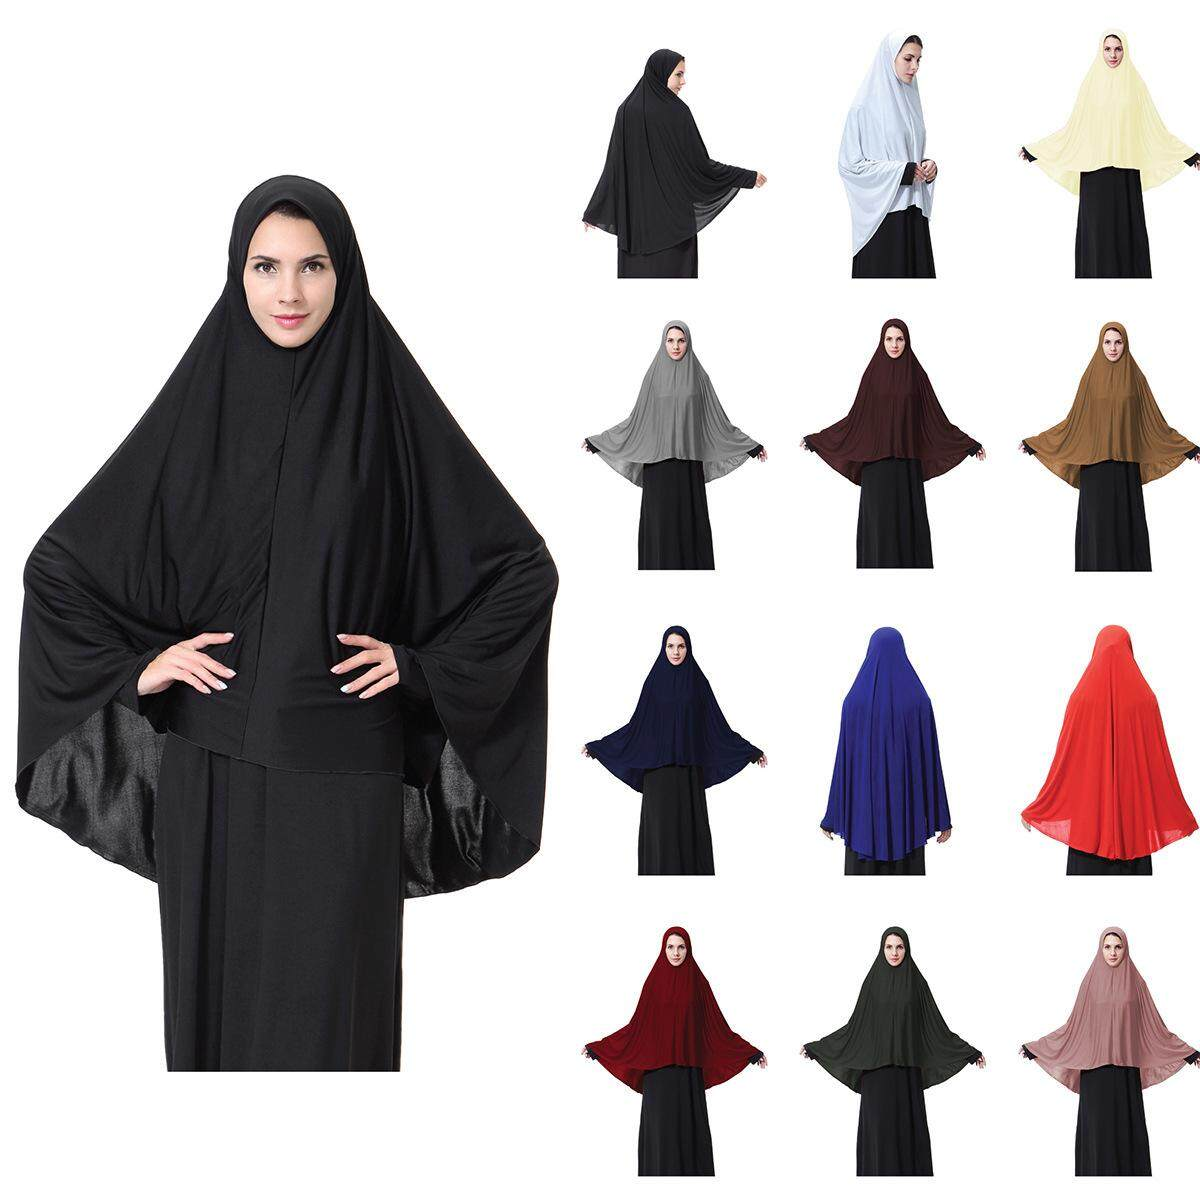 Info Harga Jilbab Khimar Olivia Terbaru 2018 Tcash Vaganza 29 Xiaomi Mi Power Bank 10000mah 2 Fast Charging Generation Silver Muslim Accessories For Sale Fashion Online Gogo Womens Elegant Modest Islamic Ramadan Arafah